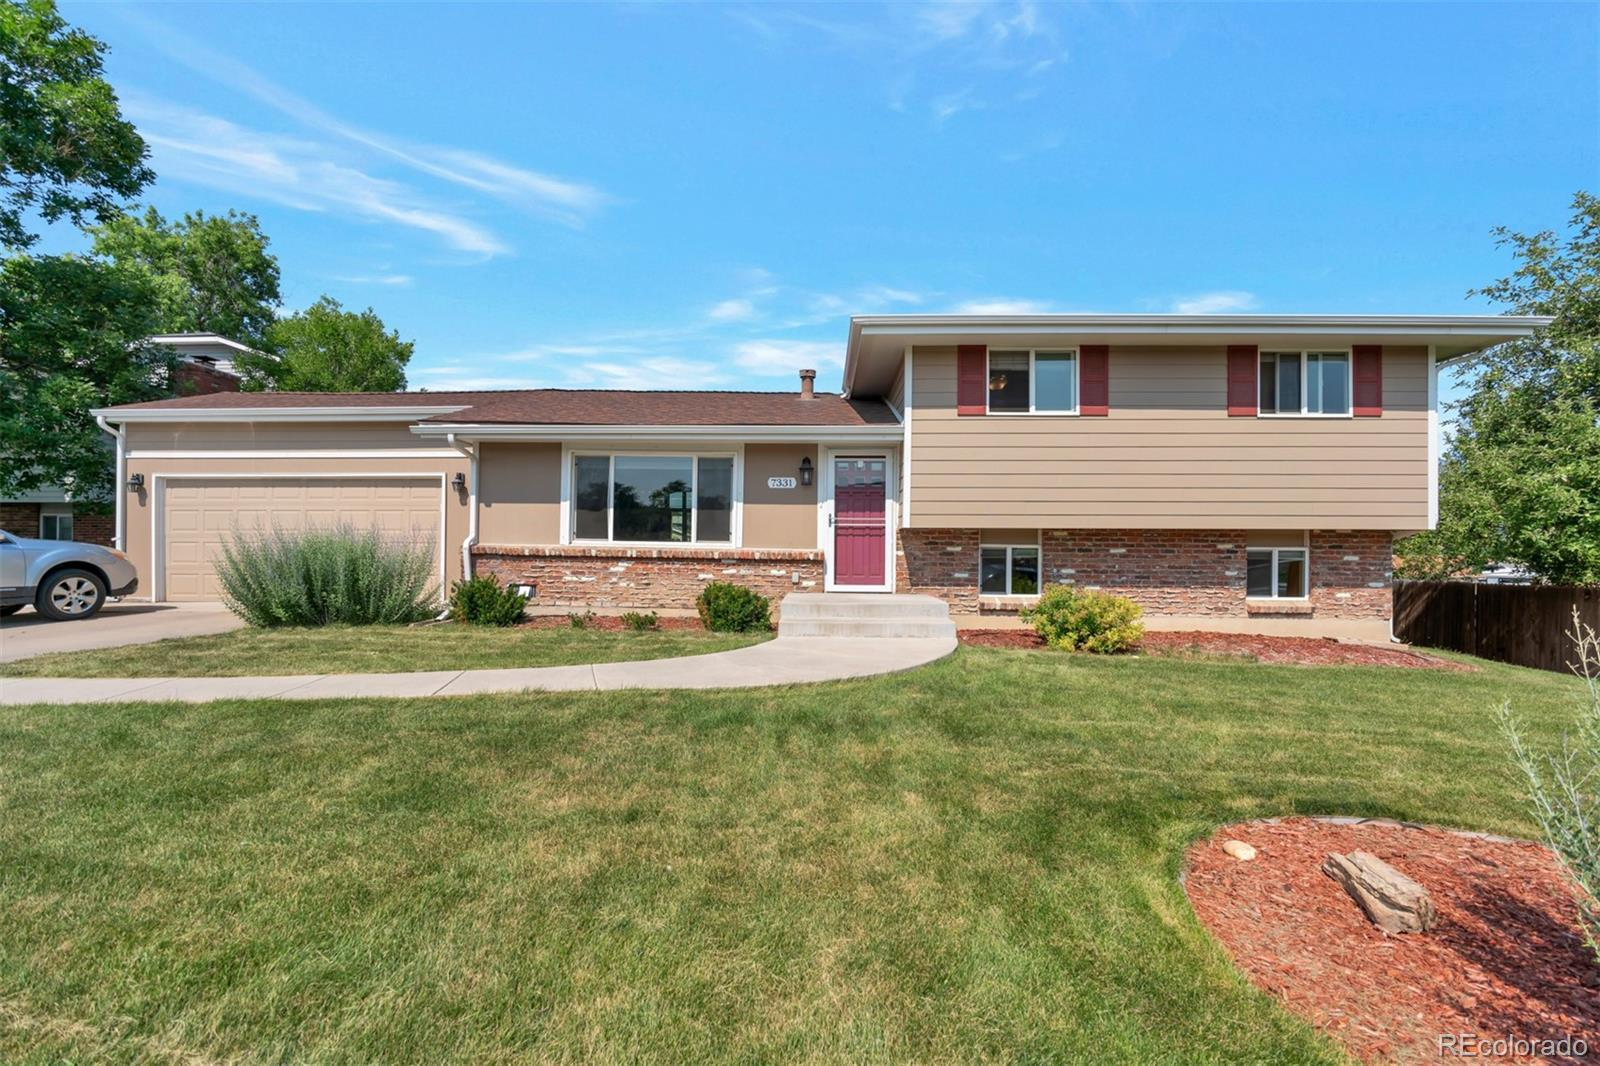 7331 S Clermont Drive, Centennial, CO 80122 - MLS#: 8648497